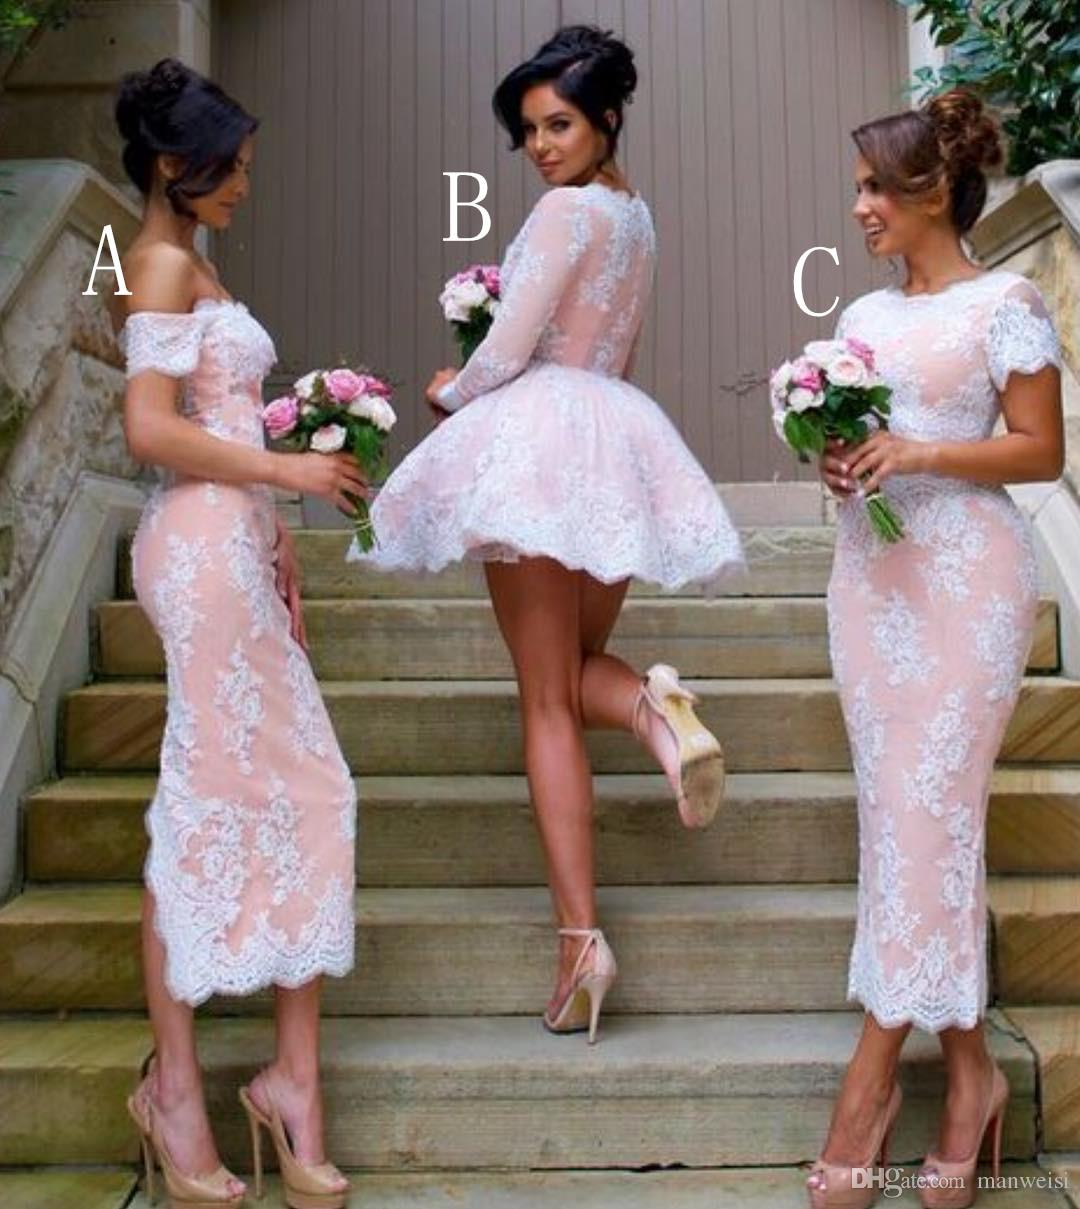 65da9a4690a05 Short 2016 Long Sleeve Lace Bridesmaid Dresses Cheap V Neck Wedding Party  Gowns Plus Size Maid of Honor Gown BE88-in Bridesmaid Dresses from Weddings  & ...